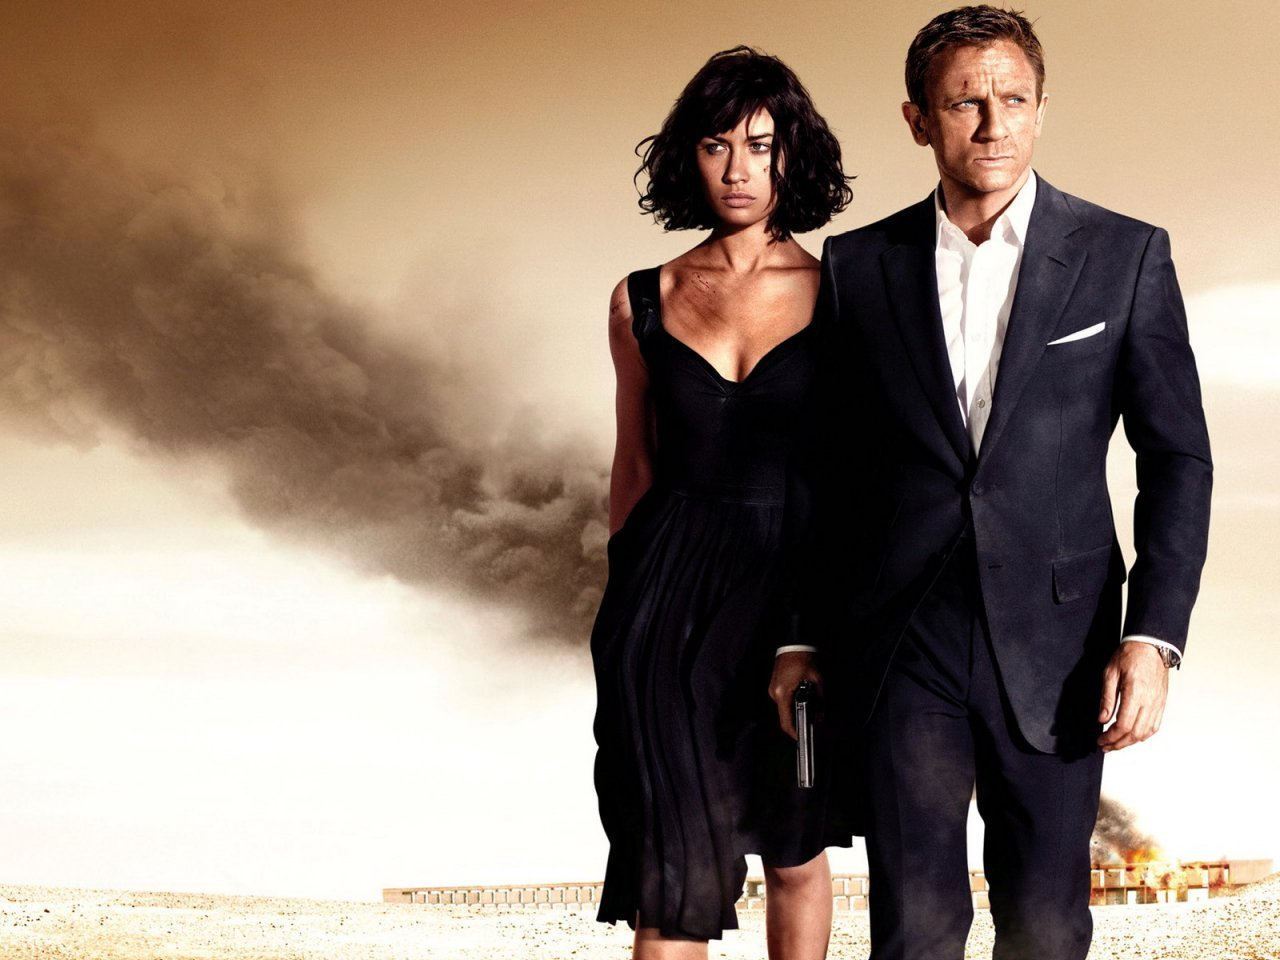 casino royale online movie free buk of ra